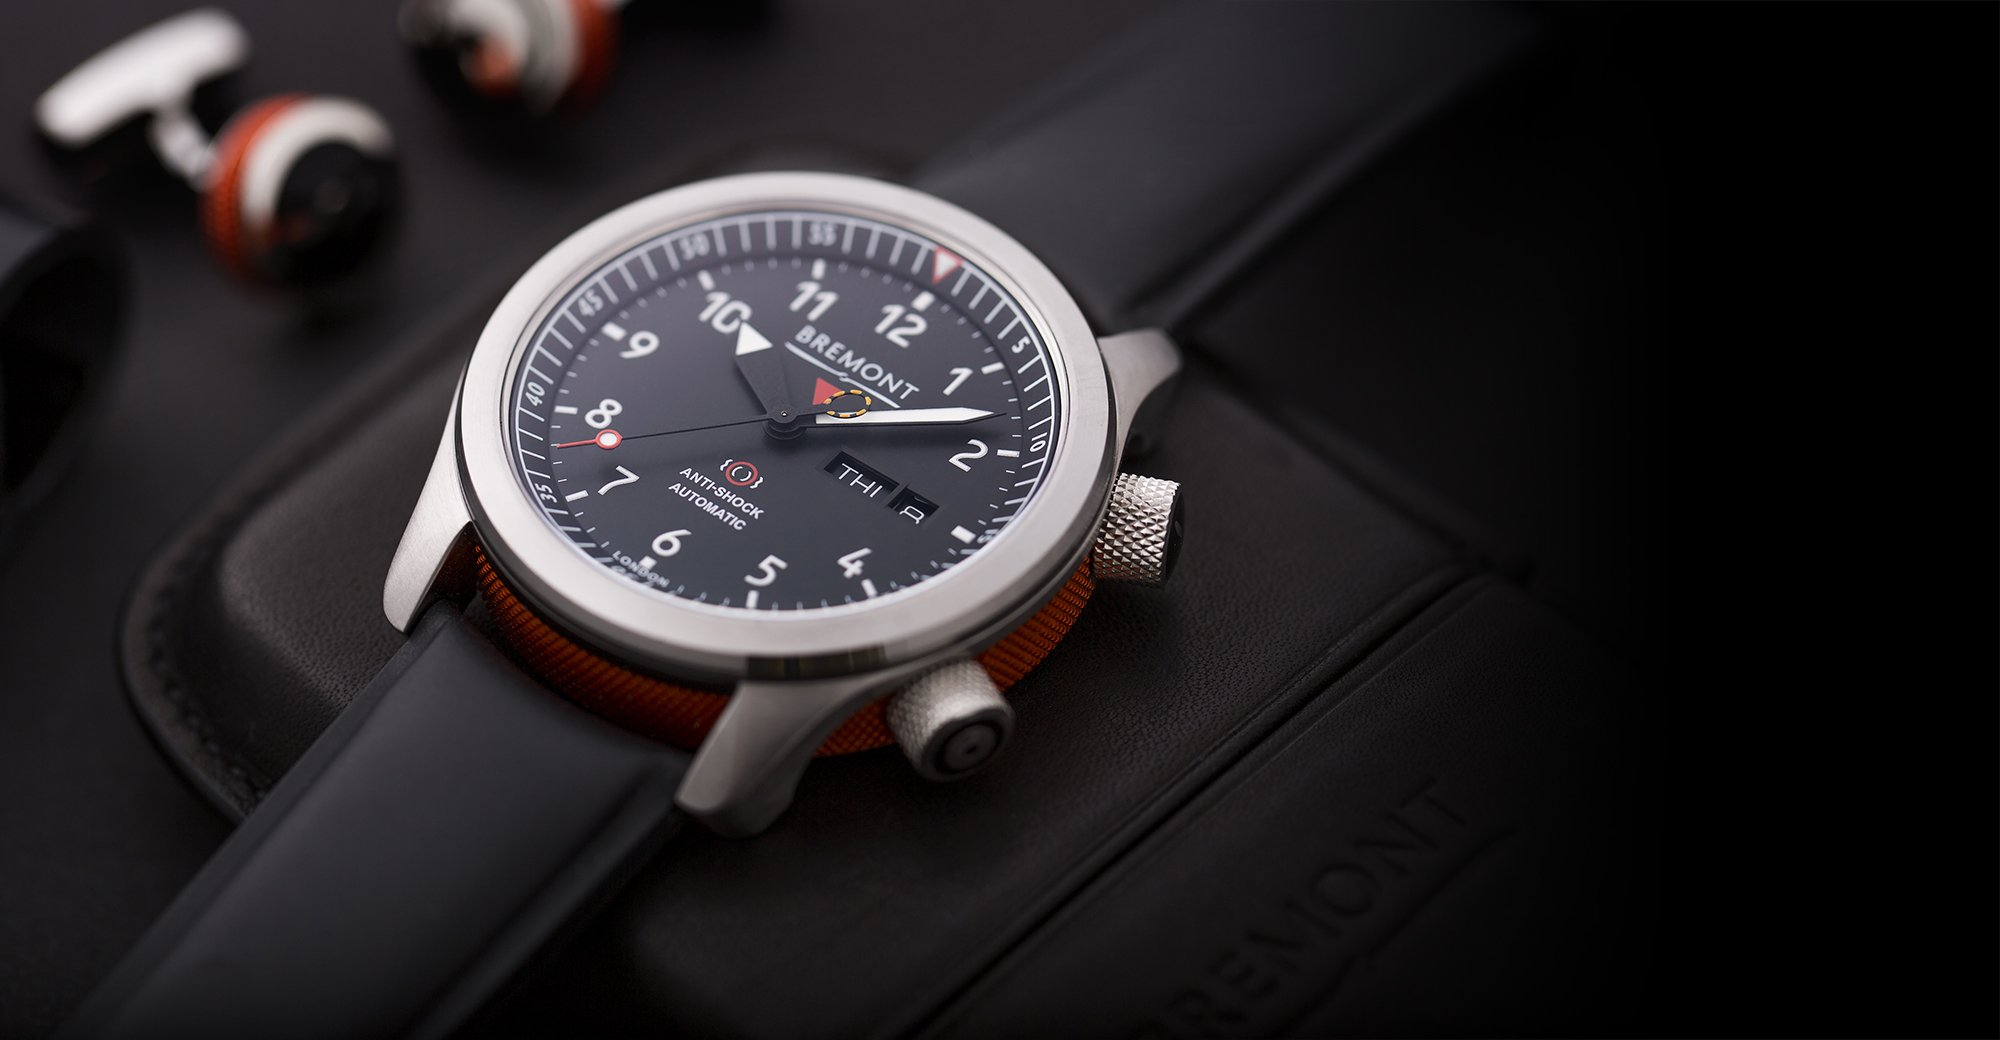 These outdoor watches are the best companion for your next adventure